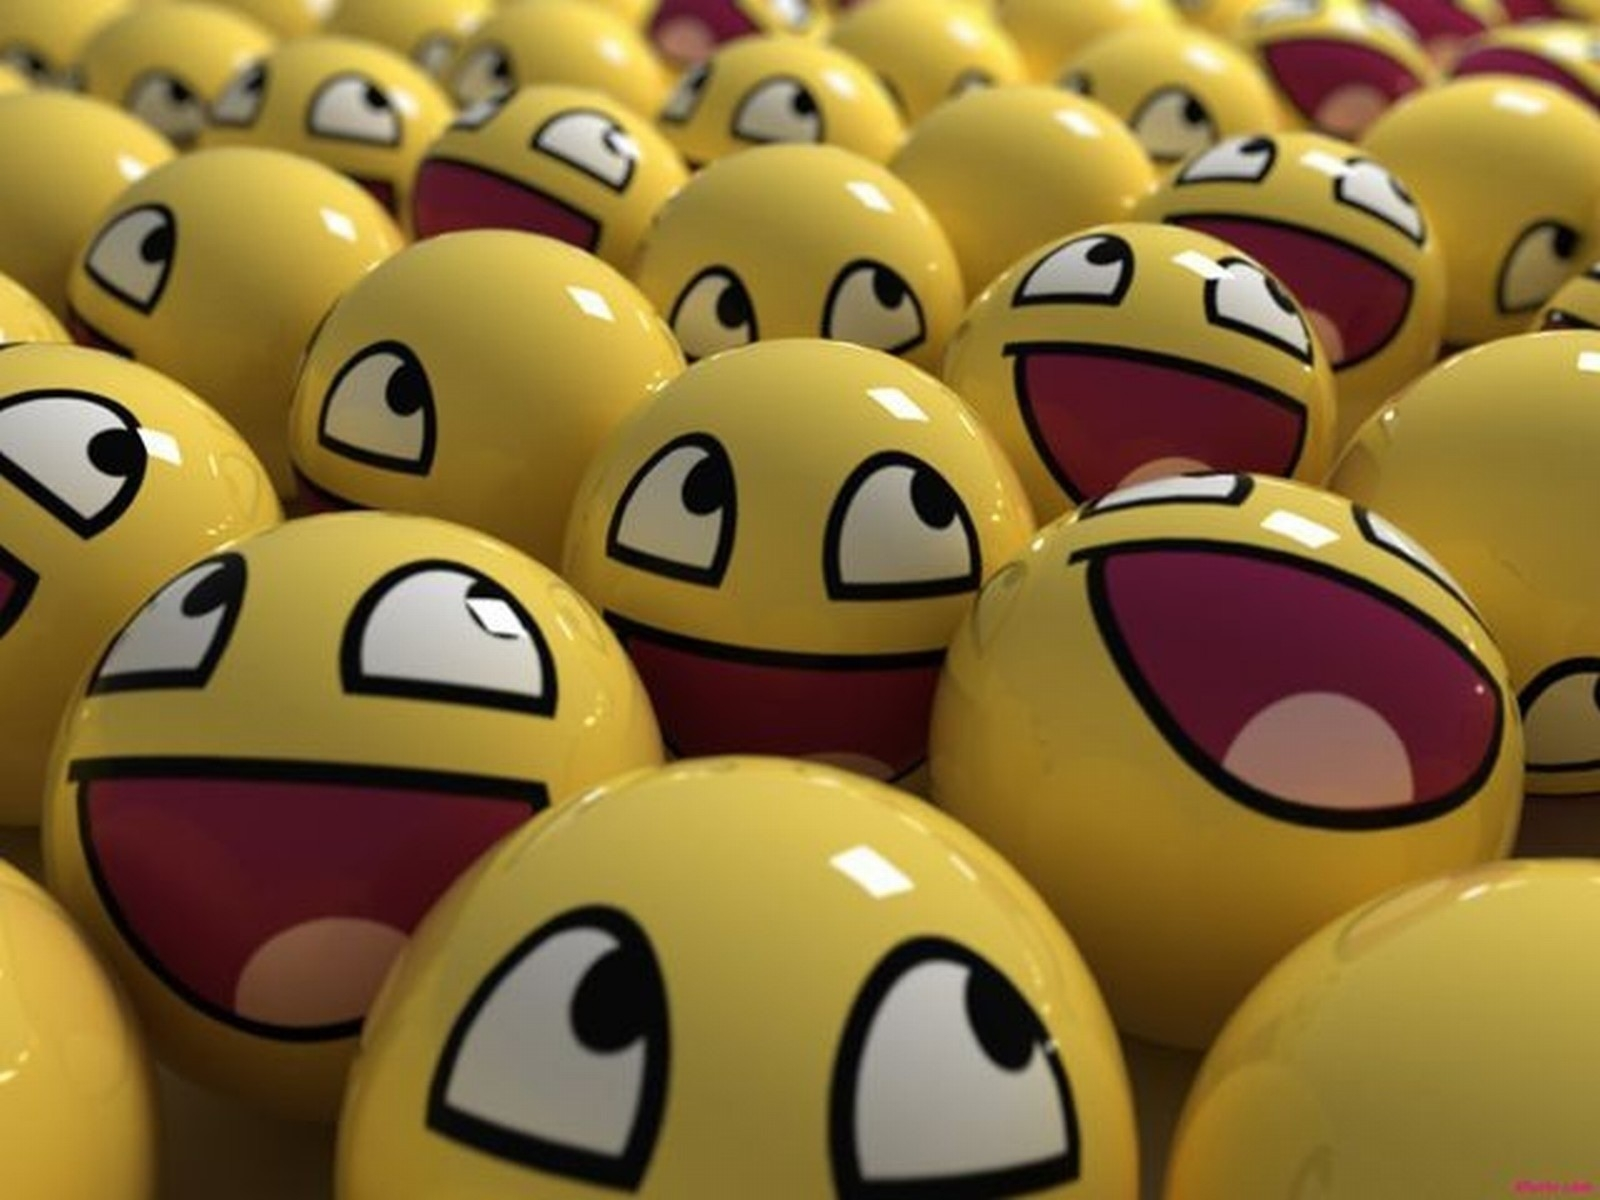 Animated Smiley Face Backgrounds | World Of Example intended for Animated Smiley Face Backgrounds 30604